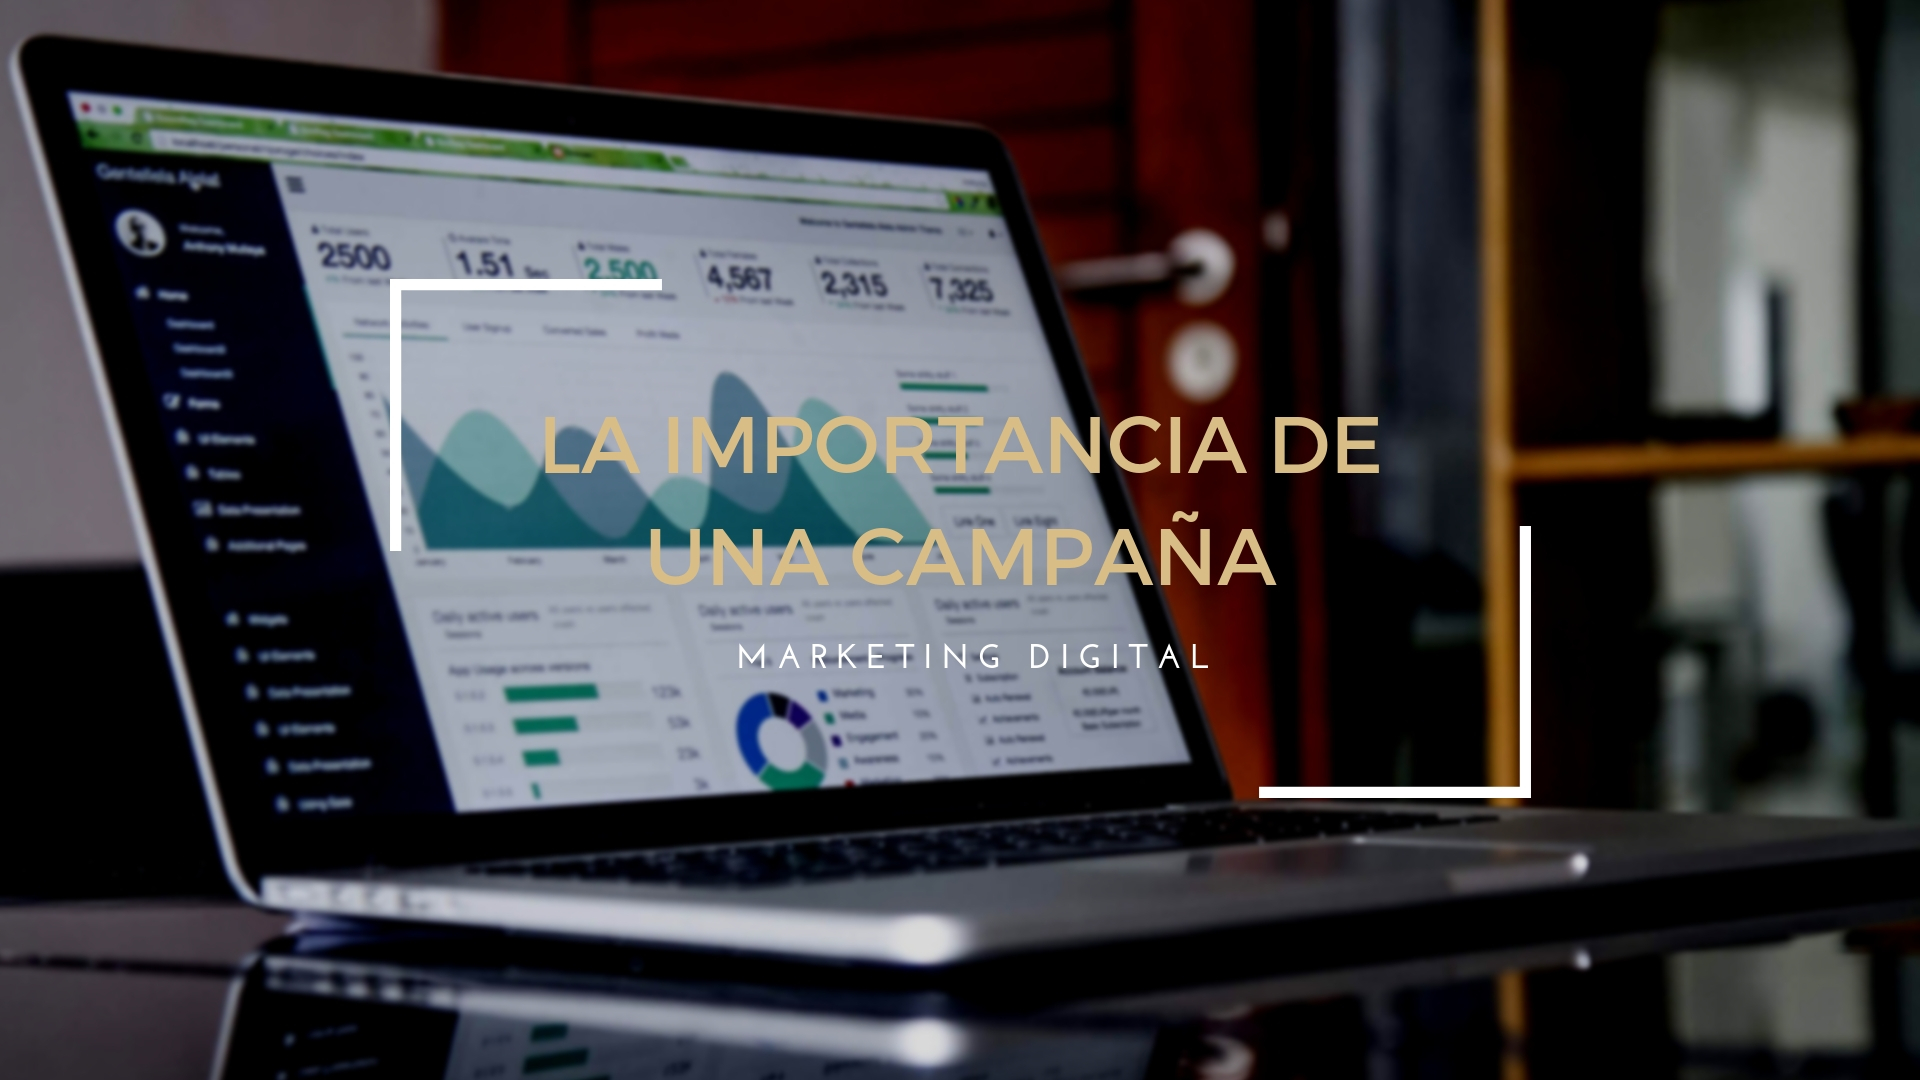 La importancia de una campaña de marketing digital